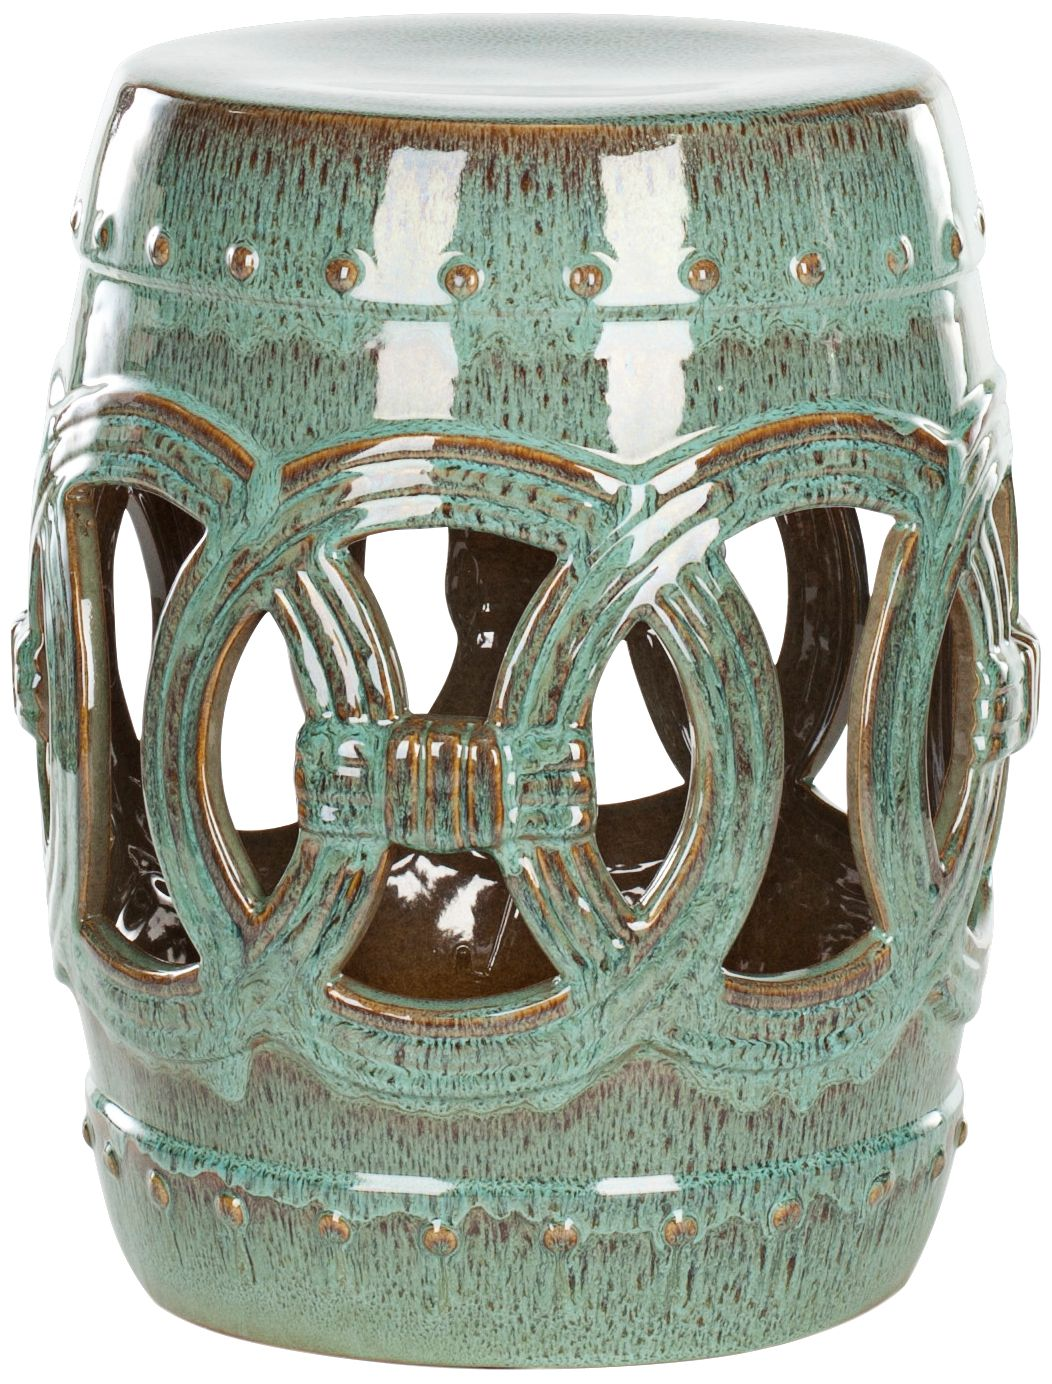 Safavieh Double Coin Blue Green Ceramic Garden Stool